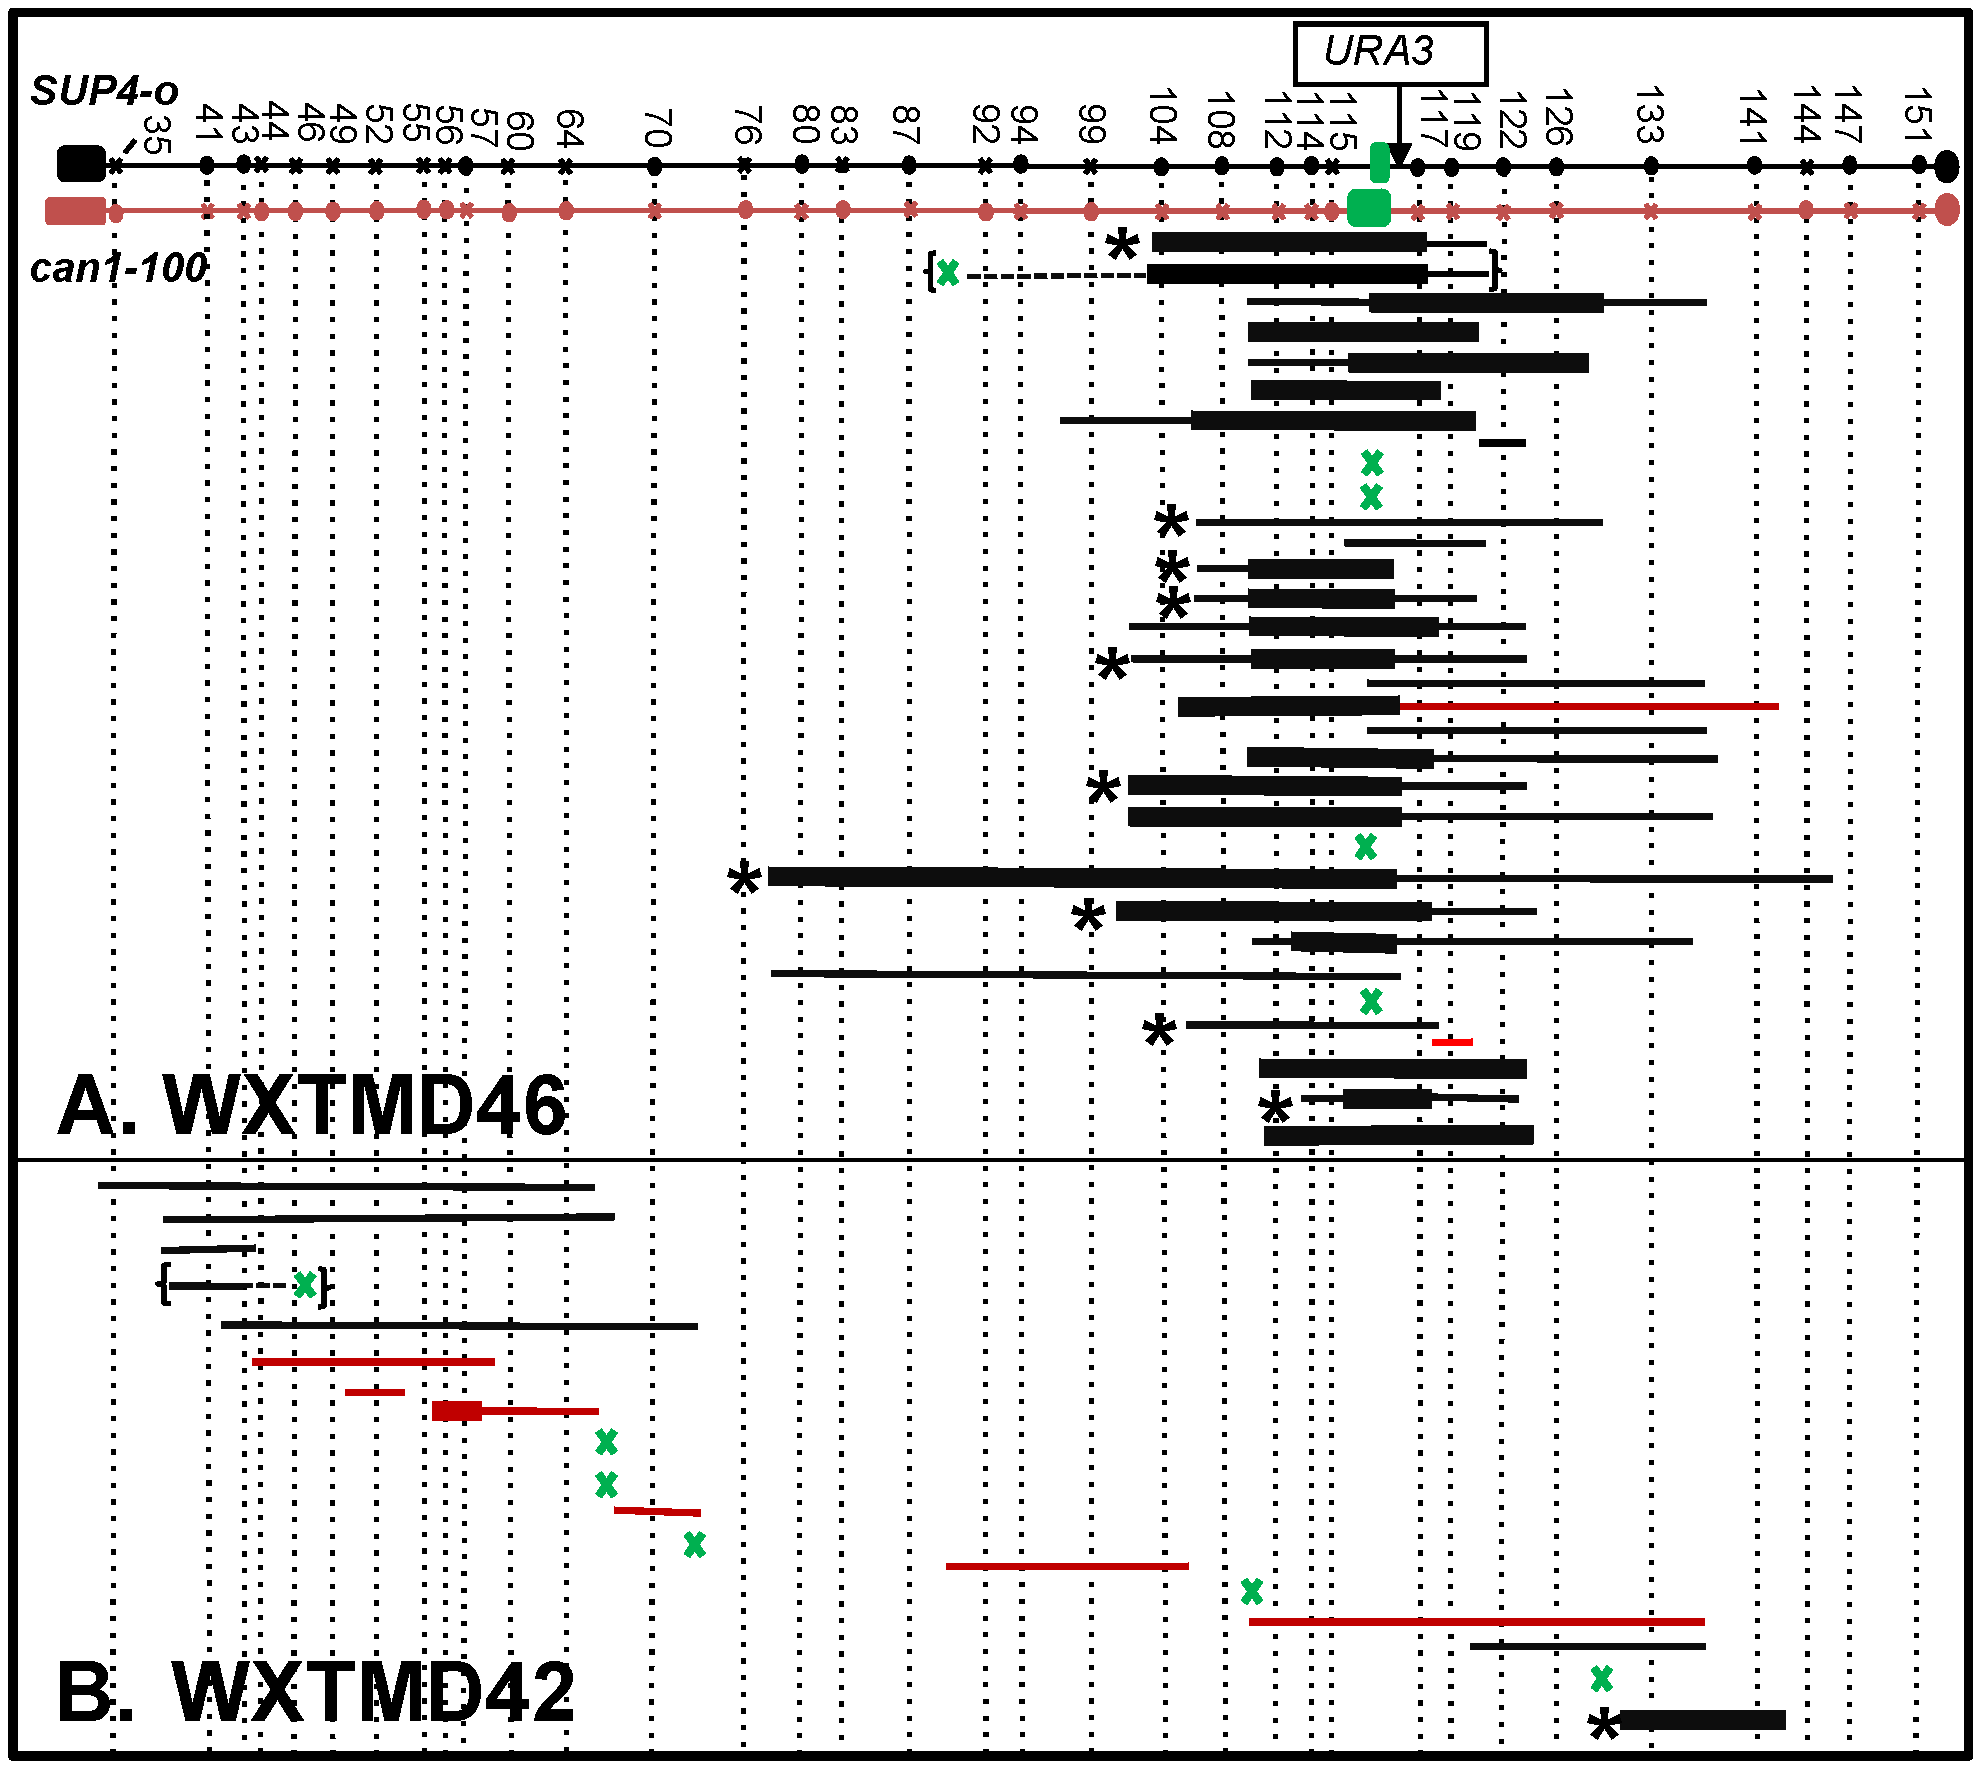 Mapping of RCOs and associated gene conversion events in WXTMD46 (GAA<sub>230</sub>/GAA<sub>20</sub>) and in WXTMD42 (GAA<sub>20</sub>/GAA<sub>20</sub>).